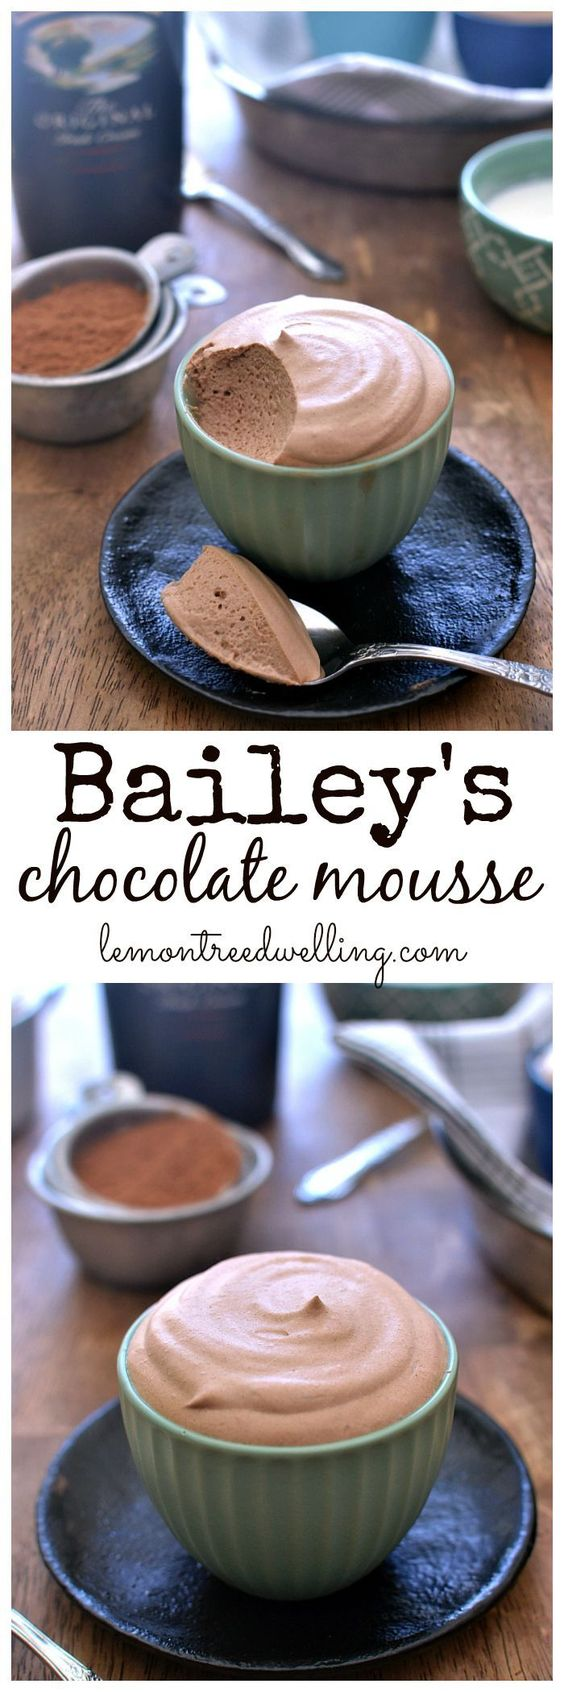 16 Awesome Christmas Day Dessert Recipes - Baileys Chocolate Mousse